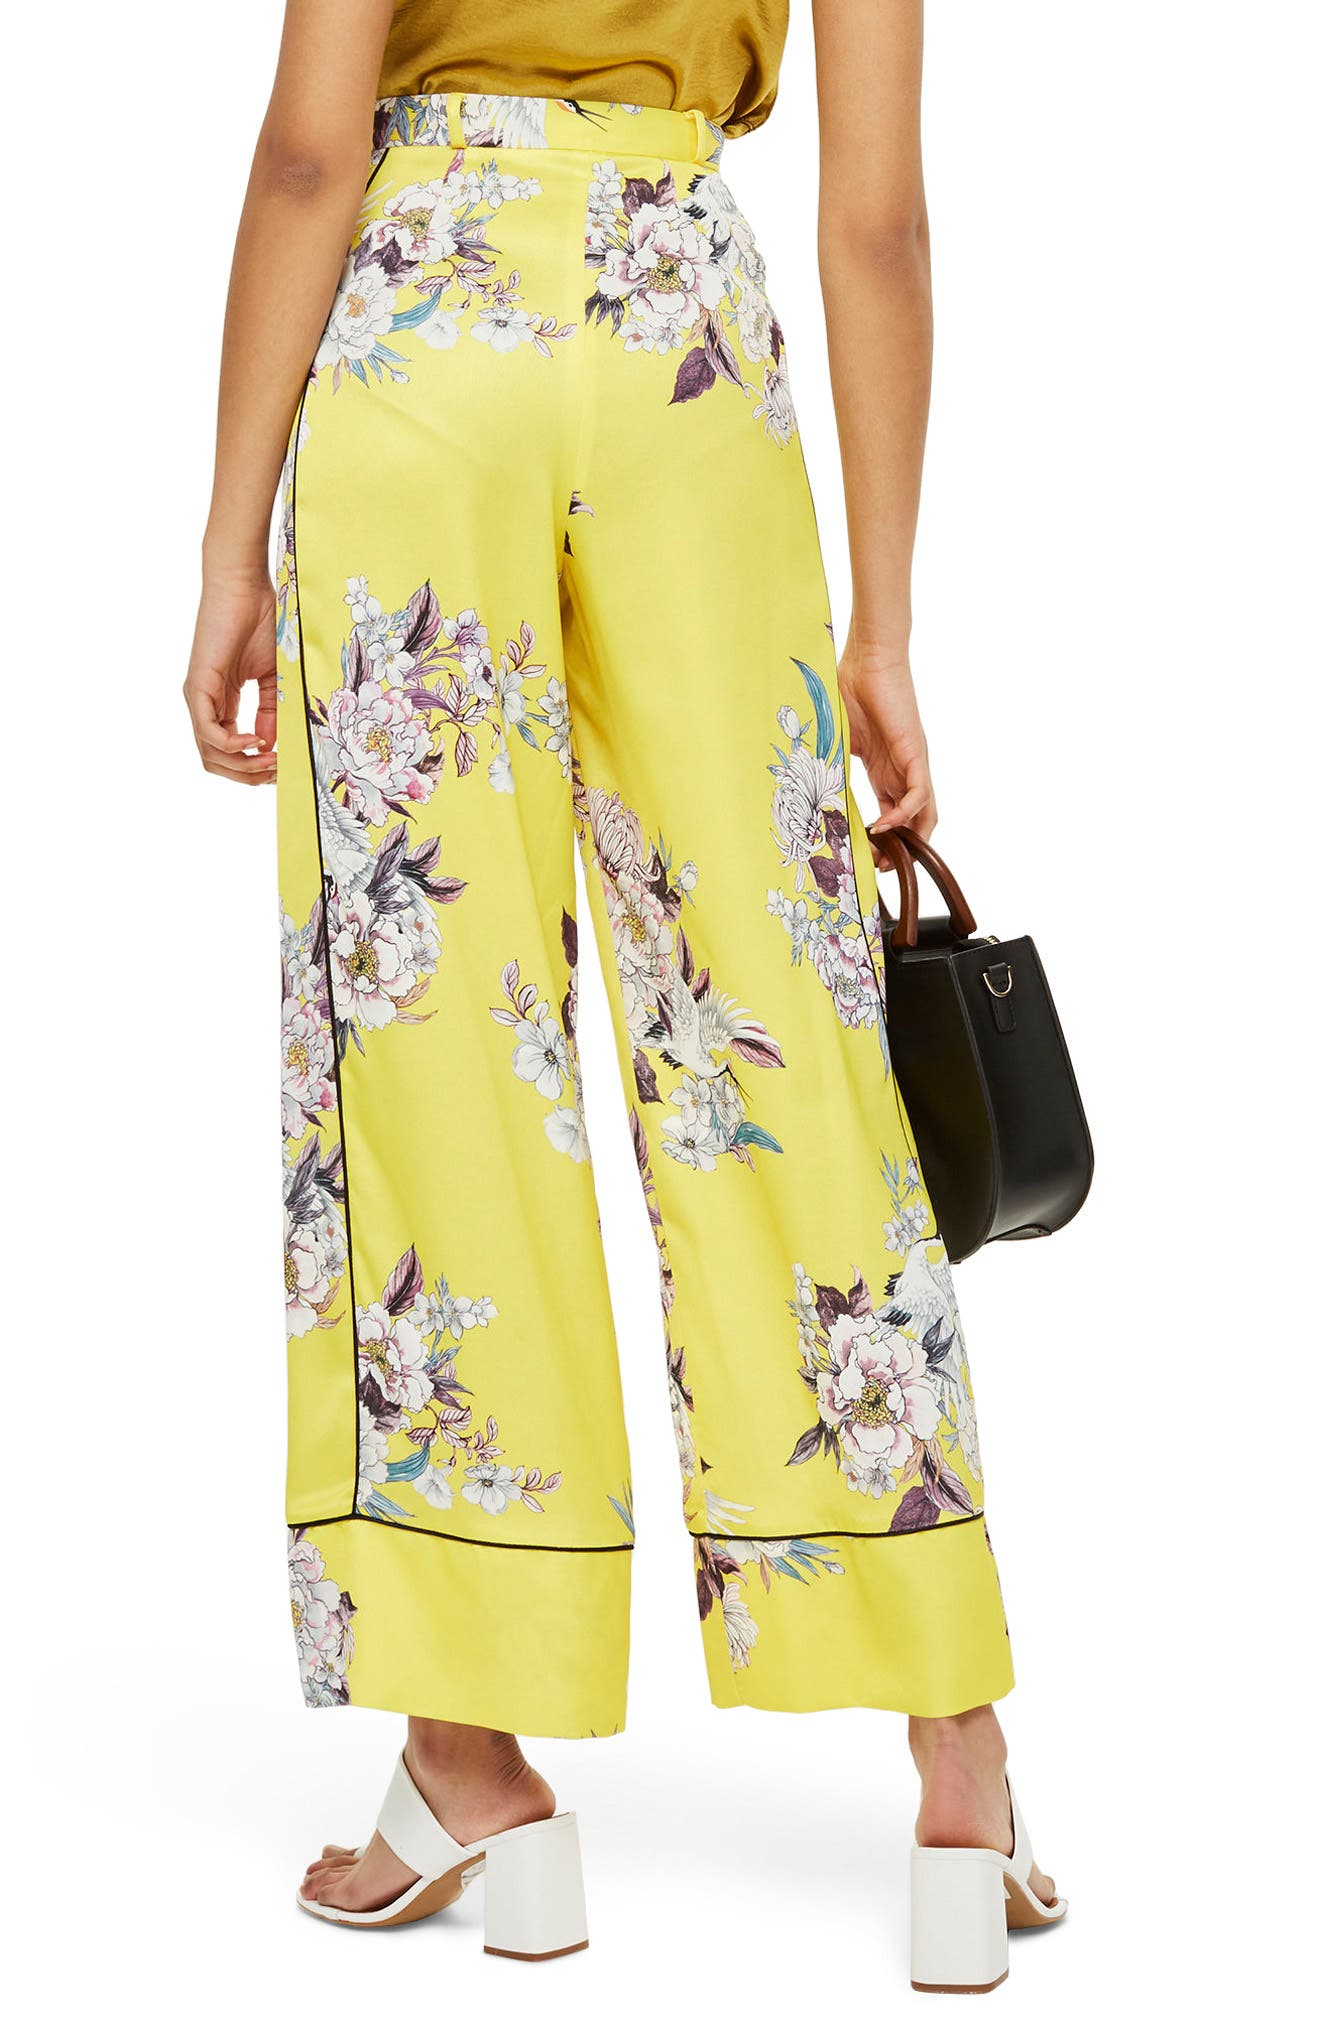 Heron Pajama Wide Leg Trousers,                             Alternate thumbnail 2, color,                             700